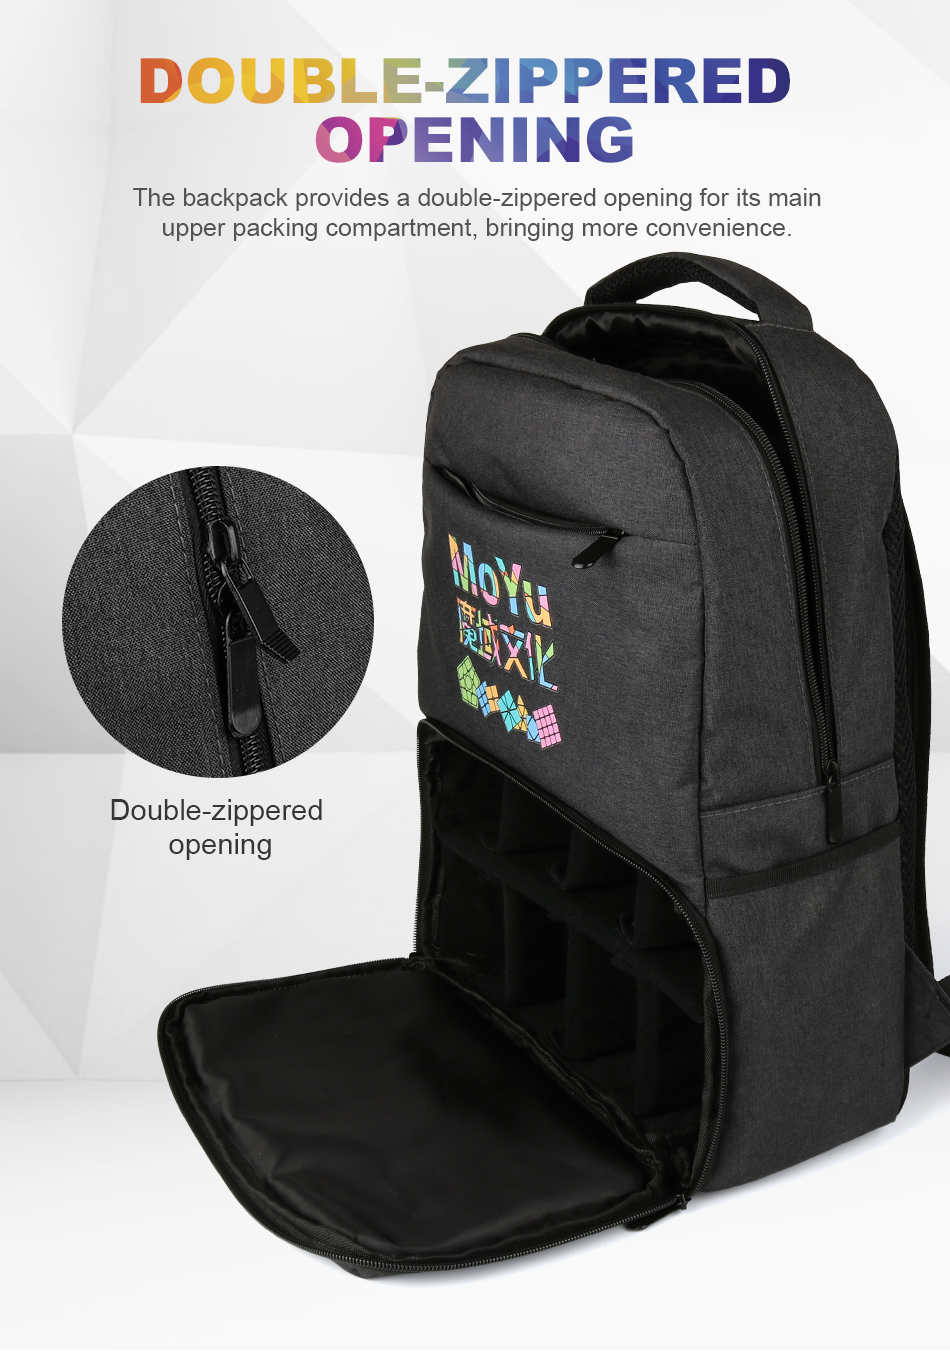 Moyu backpack for cube 10